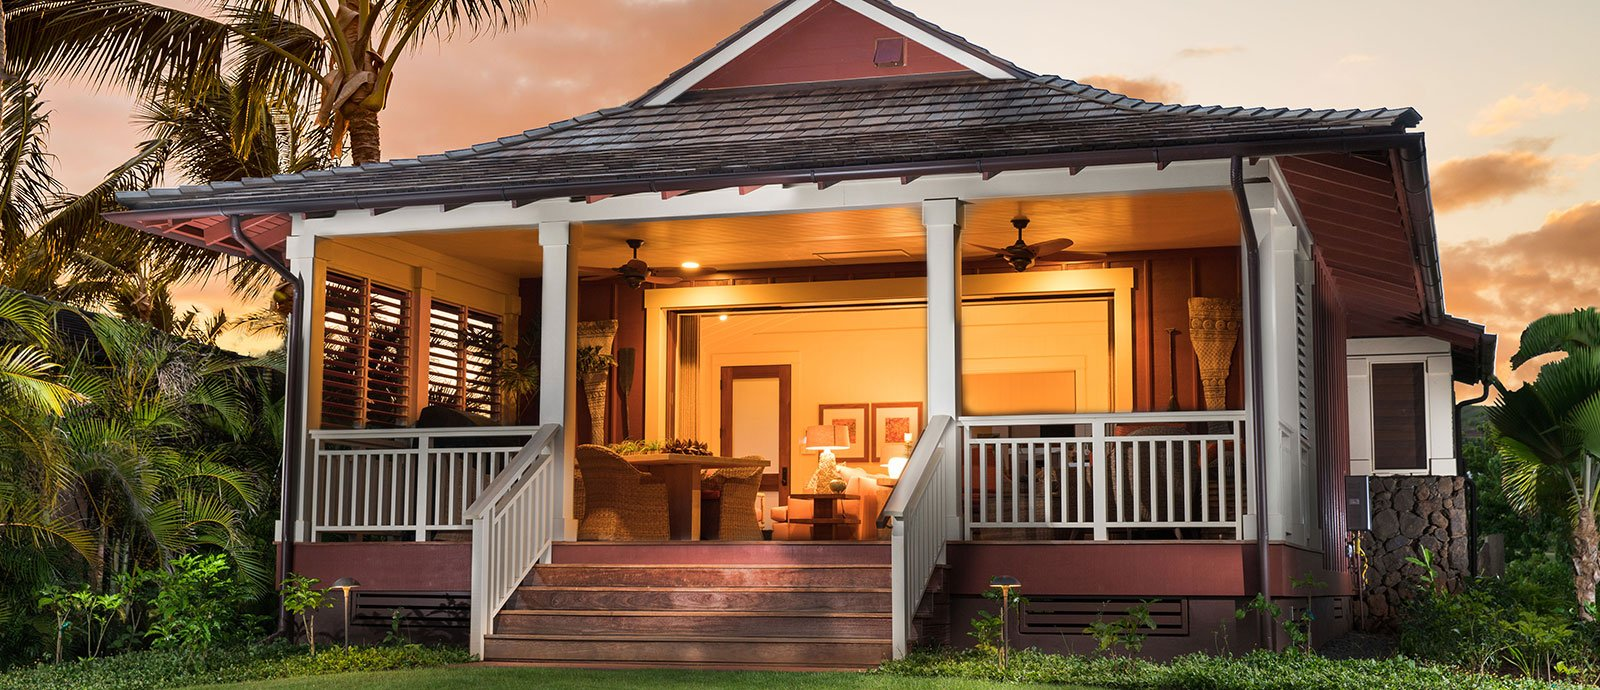 Sunset shot of the 2 bedroom bungalow at Kukuiula